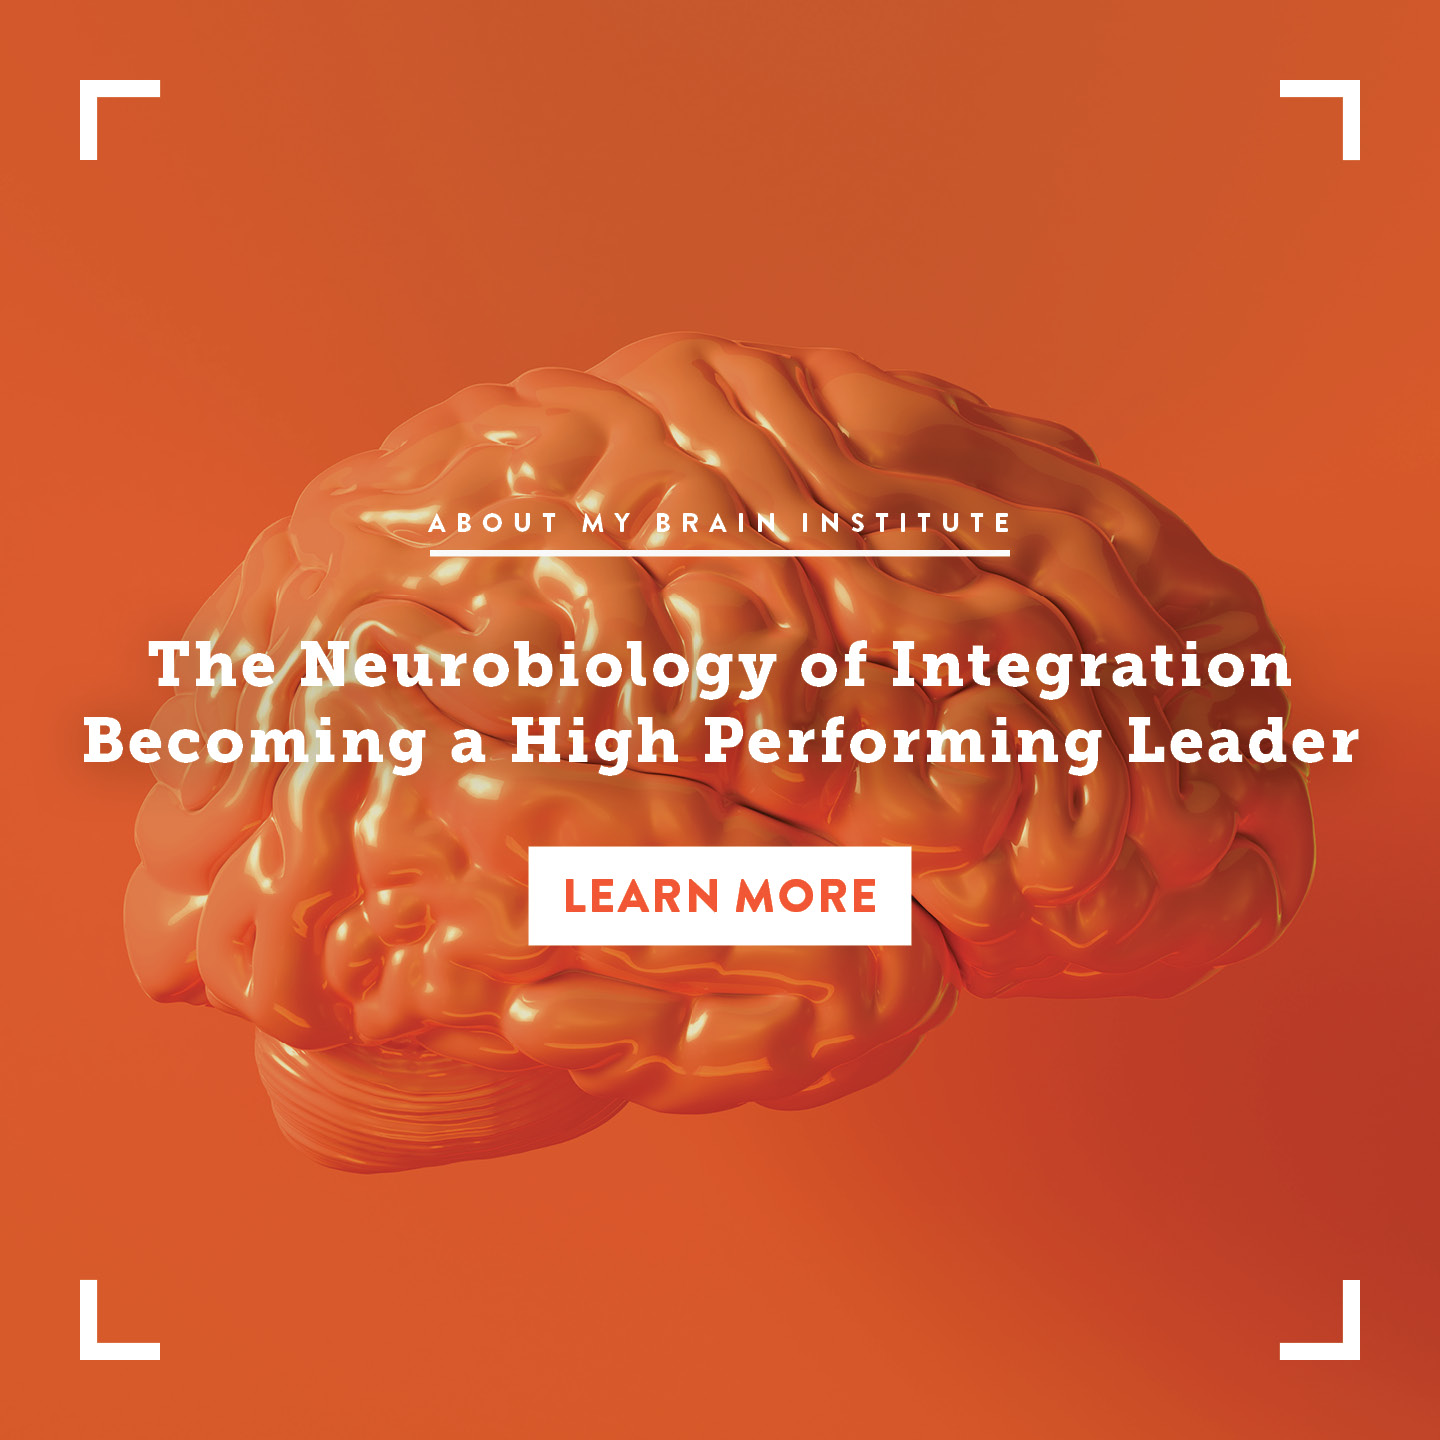 TP 1080 X 1080-The-Neurobiology-Of-Integration-Becoming-A-High-Performing-Leader